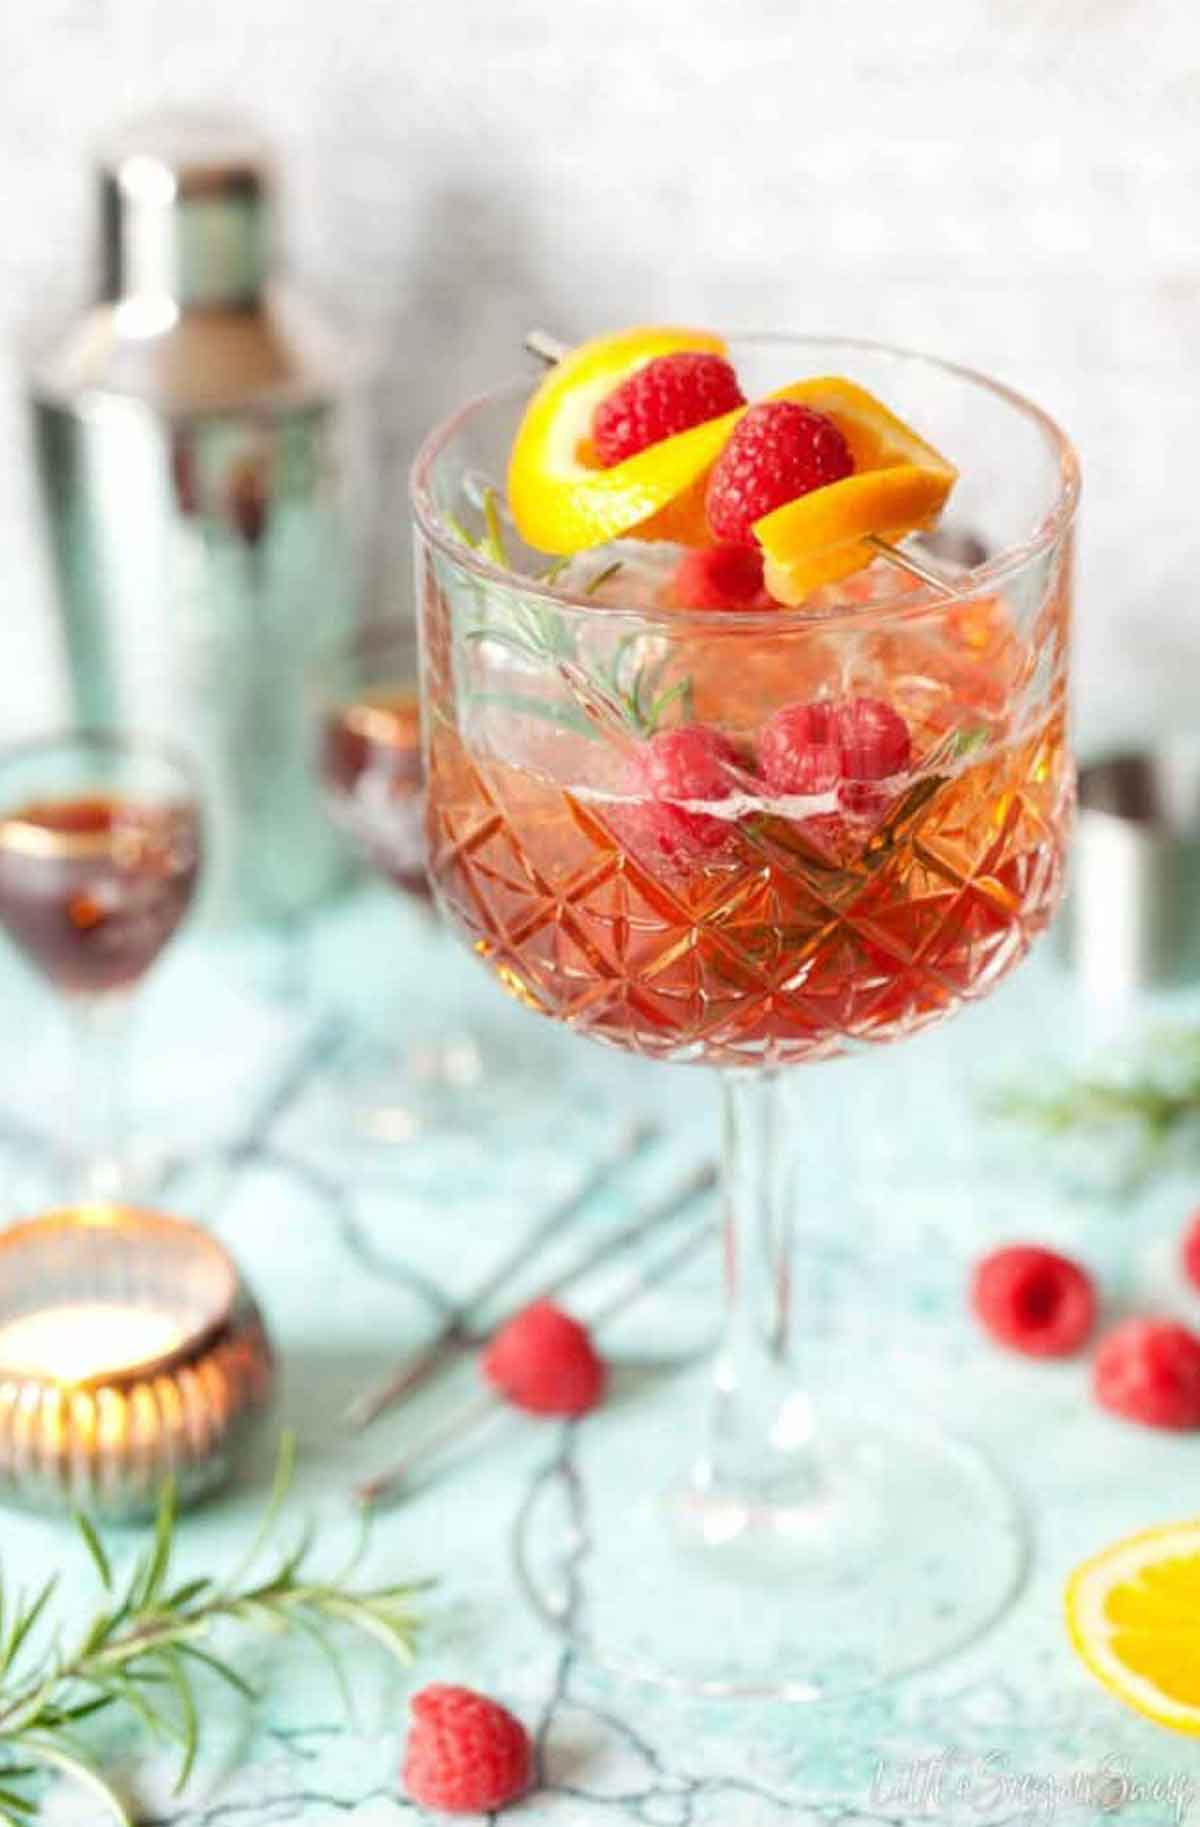 A cocktail on a table, sprinkled with raspberries, garnished with lemon and raspberries.